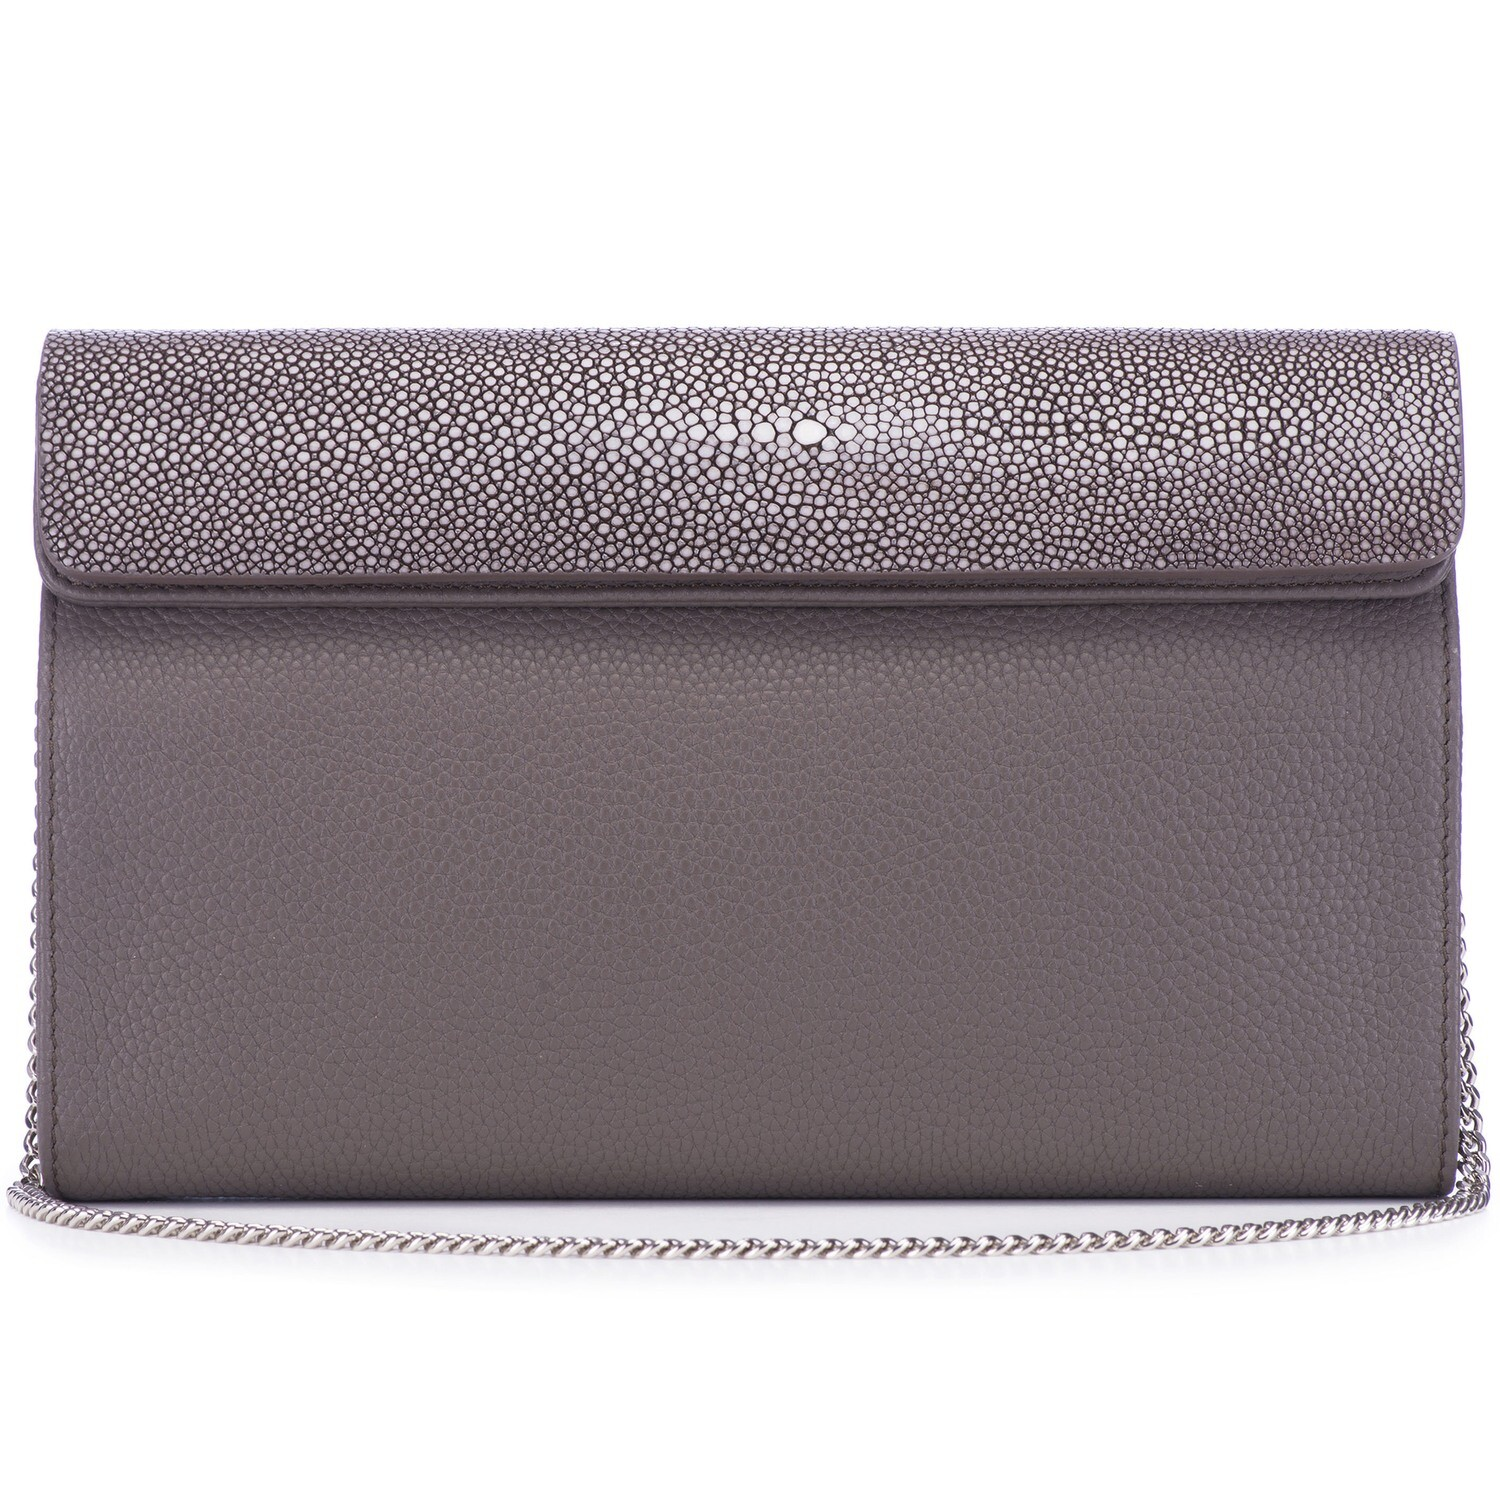 Pewter Shagreen Leather Clutch, Crossbody